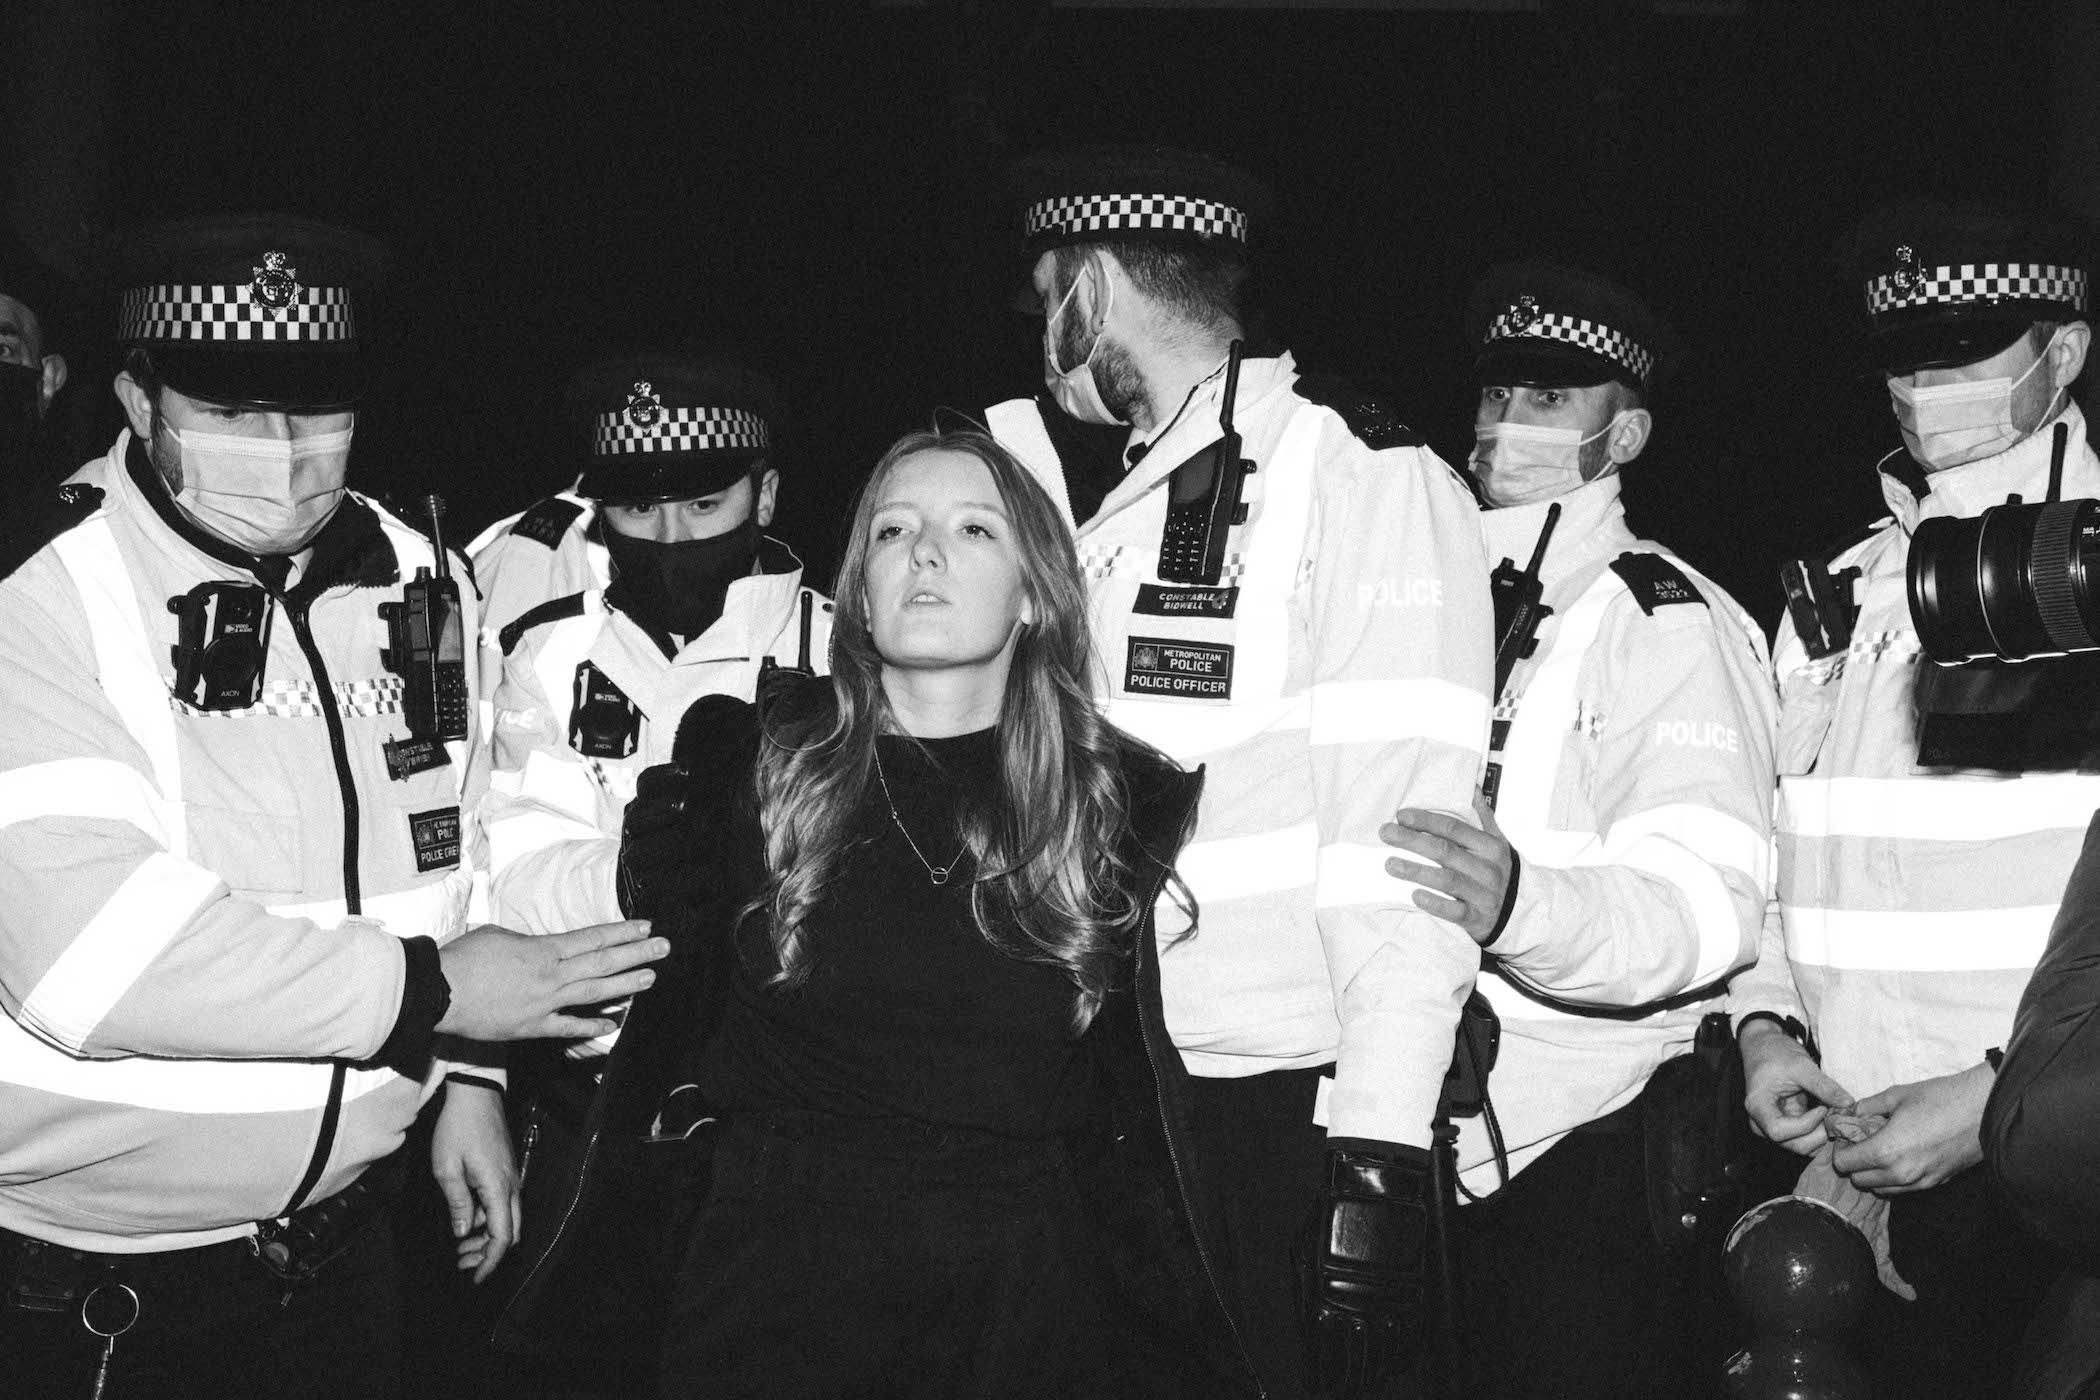 The police will never keep women safe